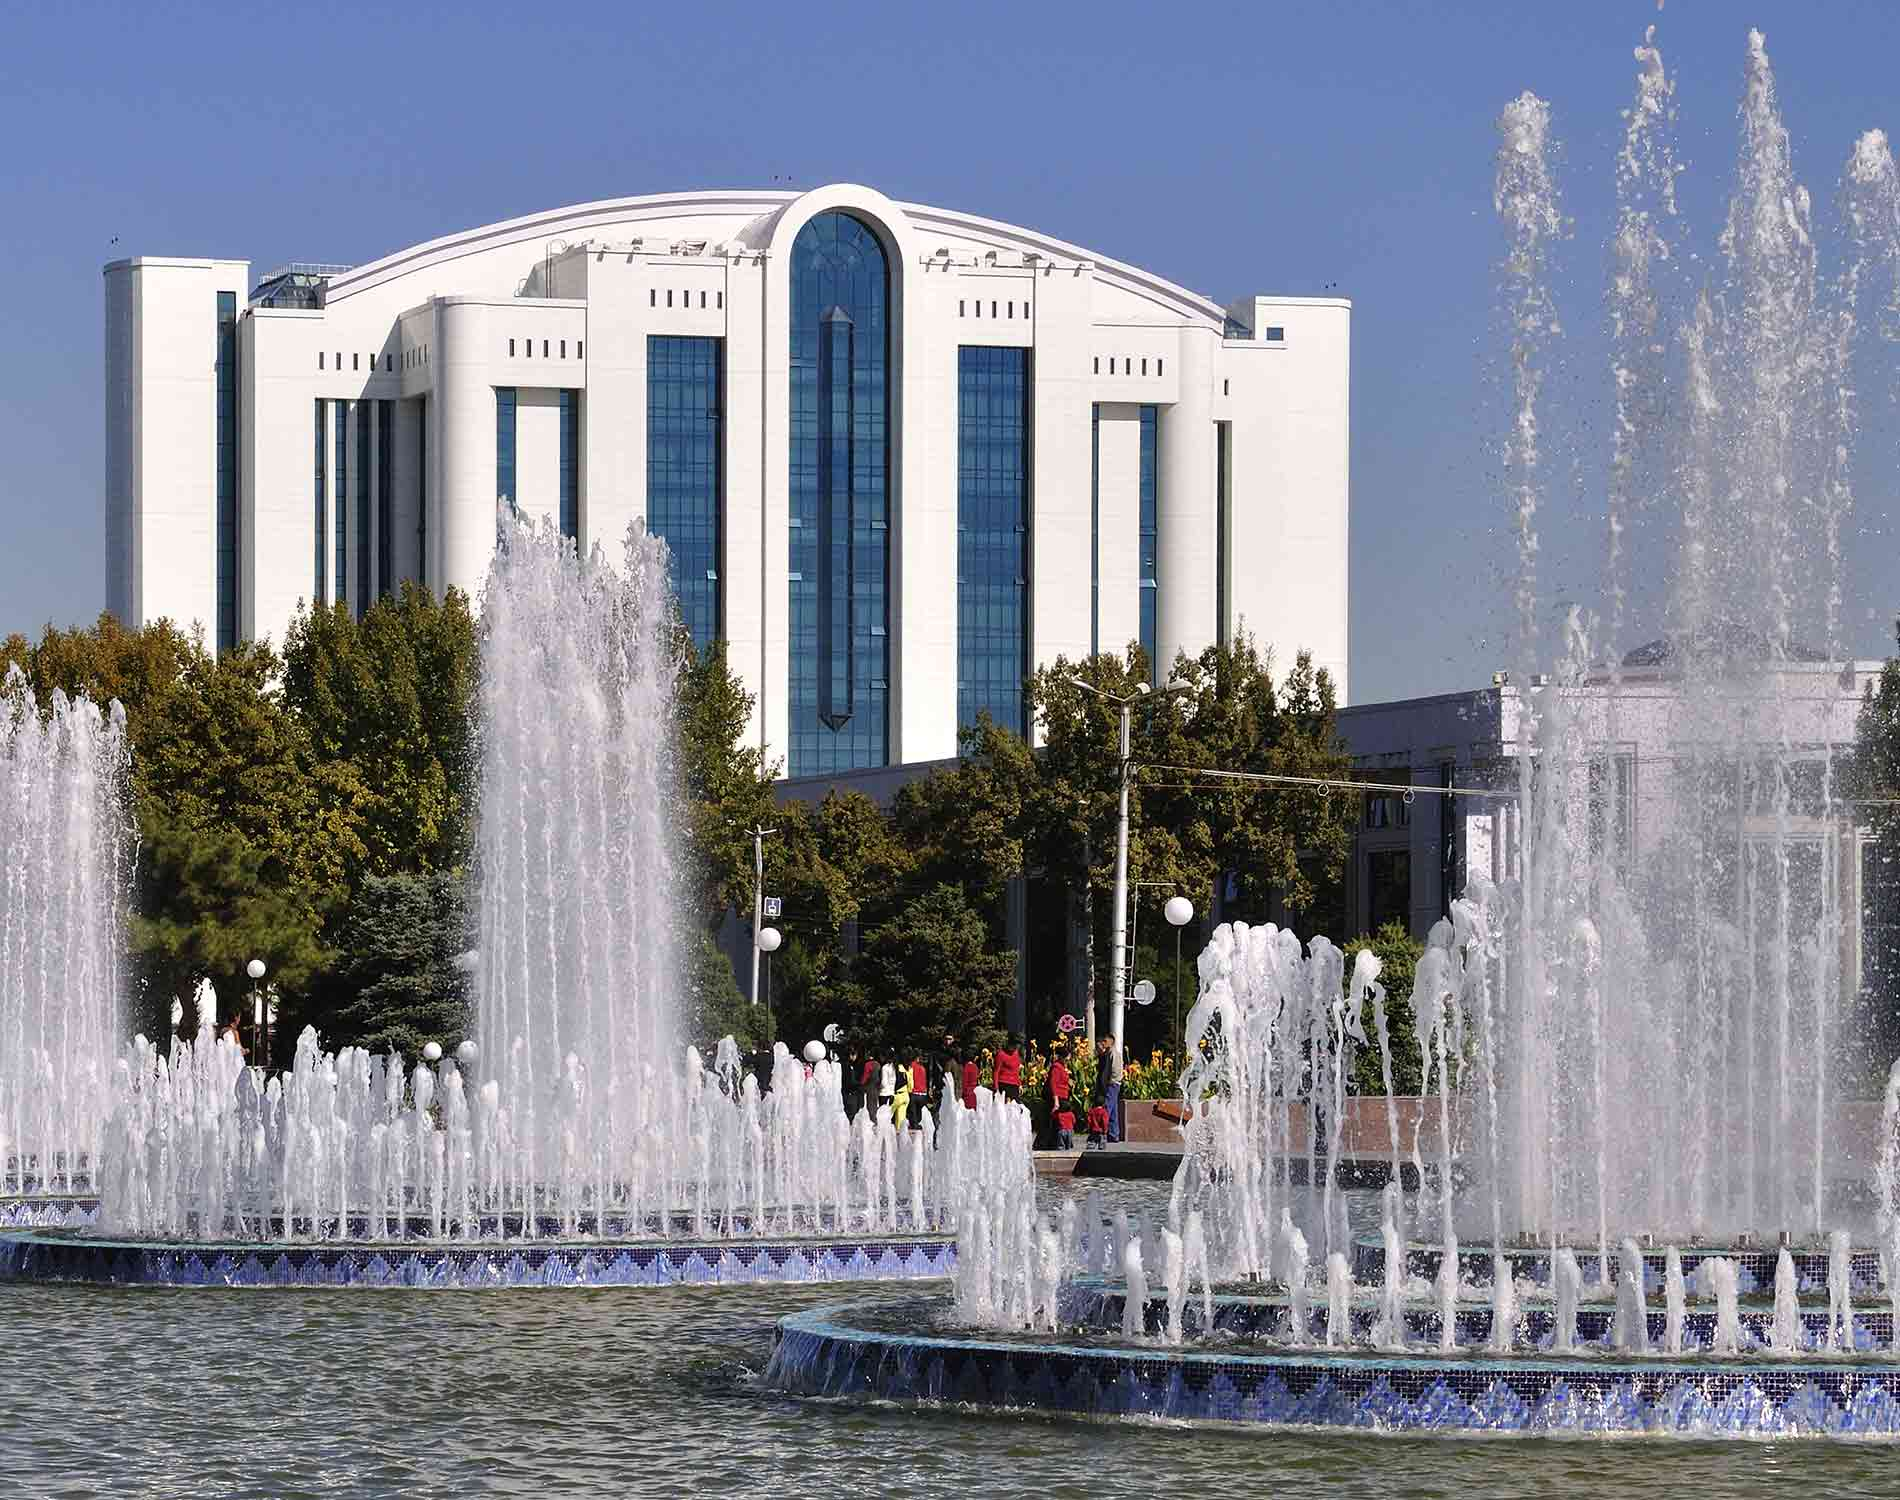 /-/media/images/website/background-images/offices/tashkent/tashkent_web.jpg